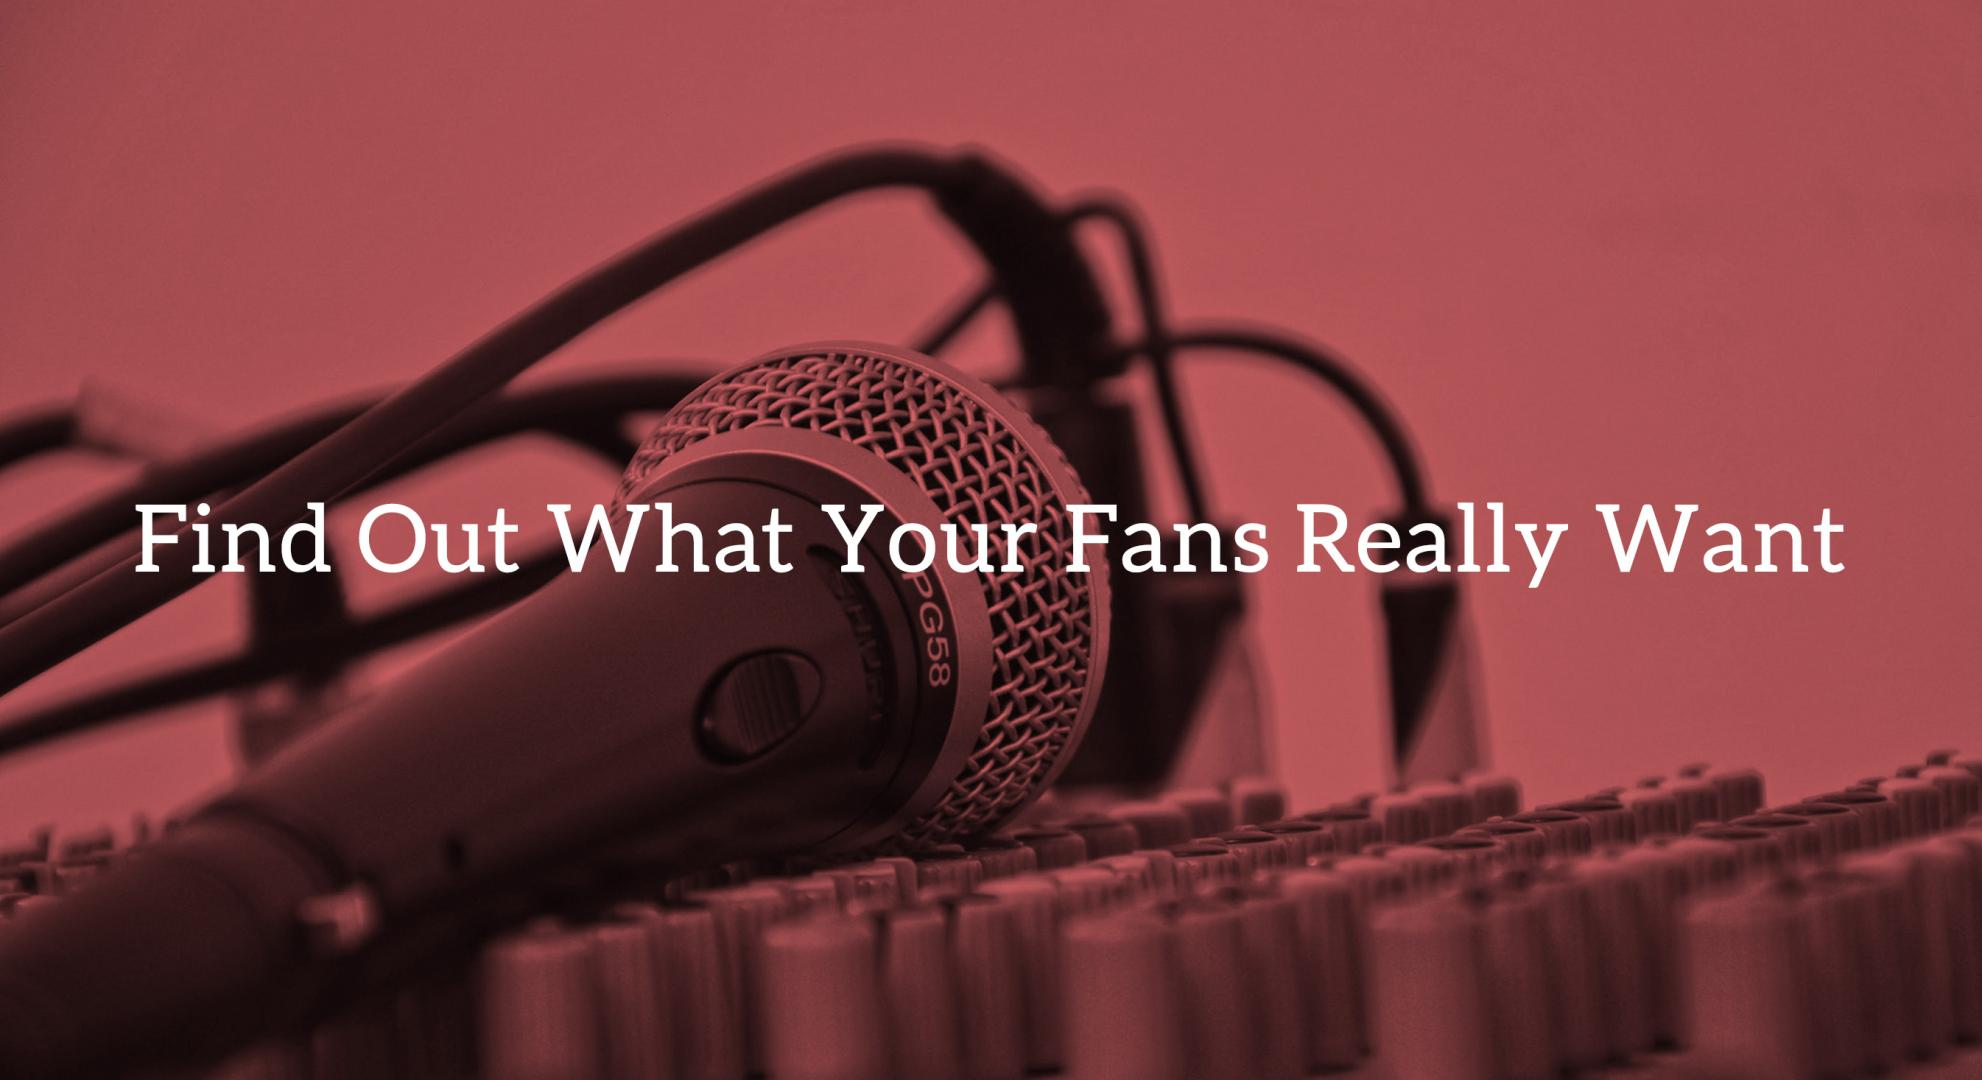 12 Ways: Find Out What Your Fans Really Want